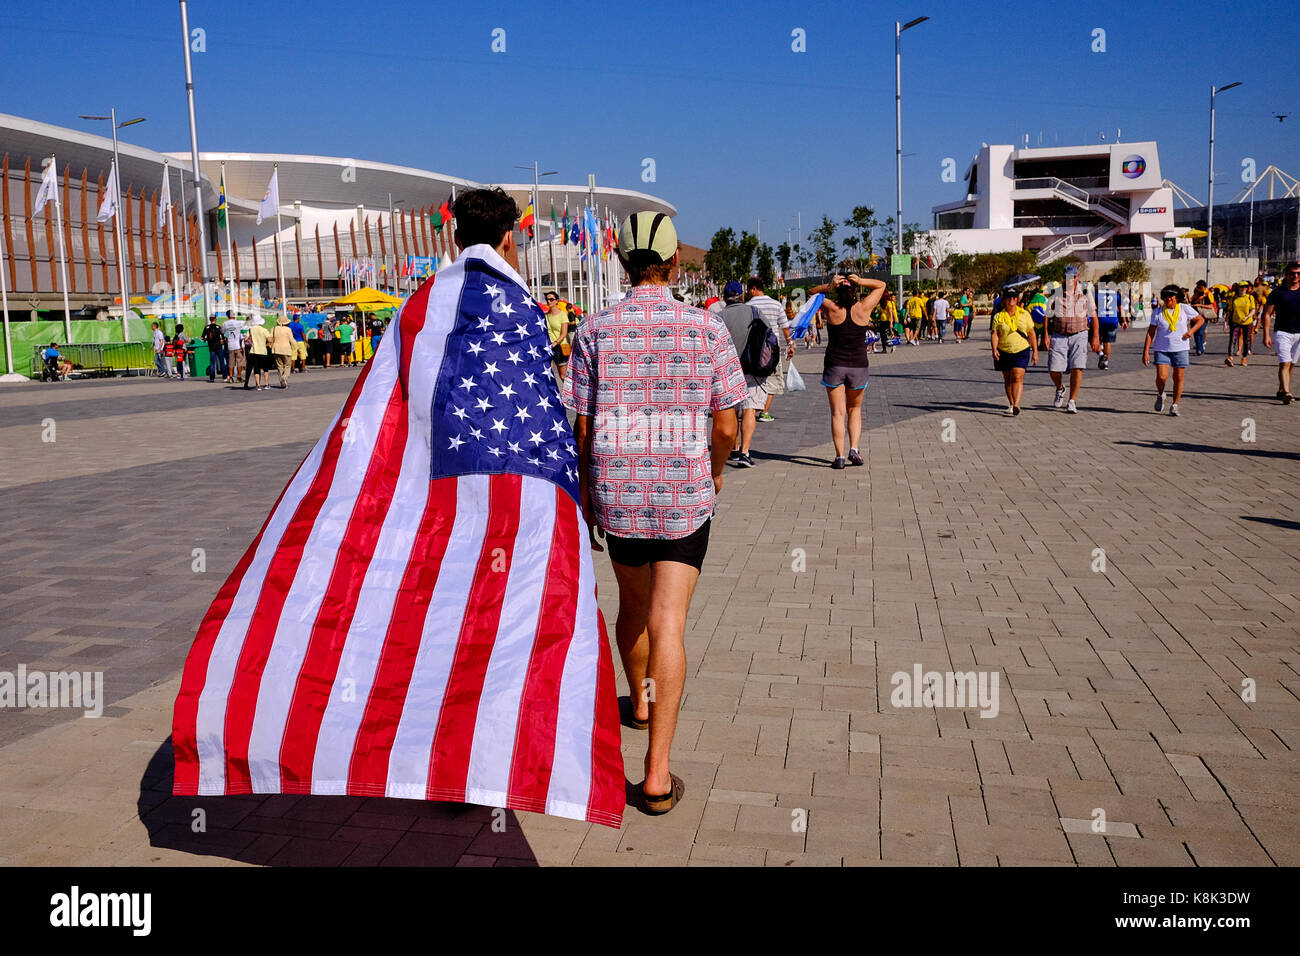 People at the Rio Olympics in 2016 covered with the North american Flag,  cheering for America during the games - Stock Image